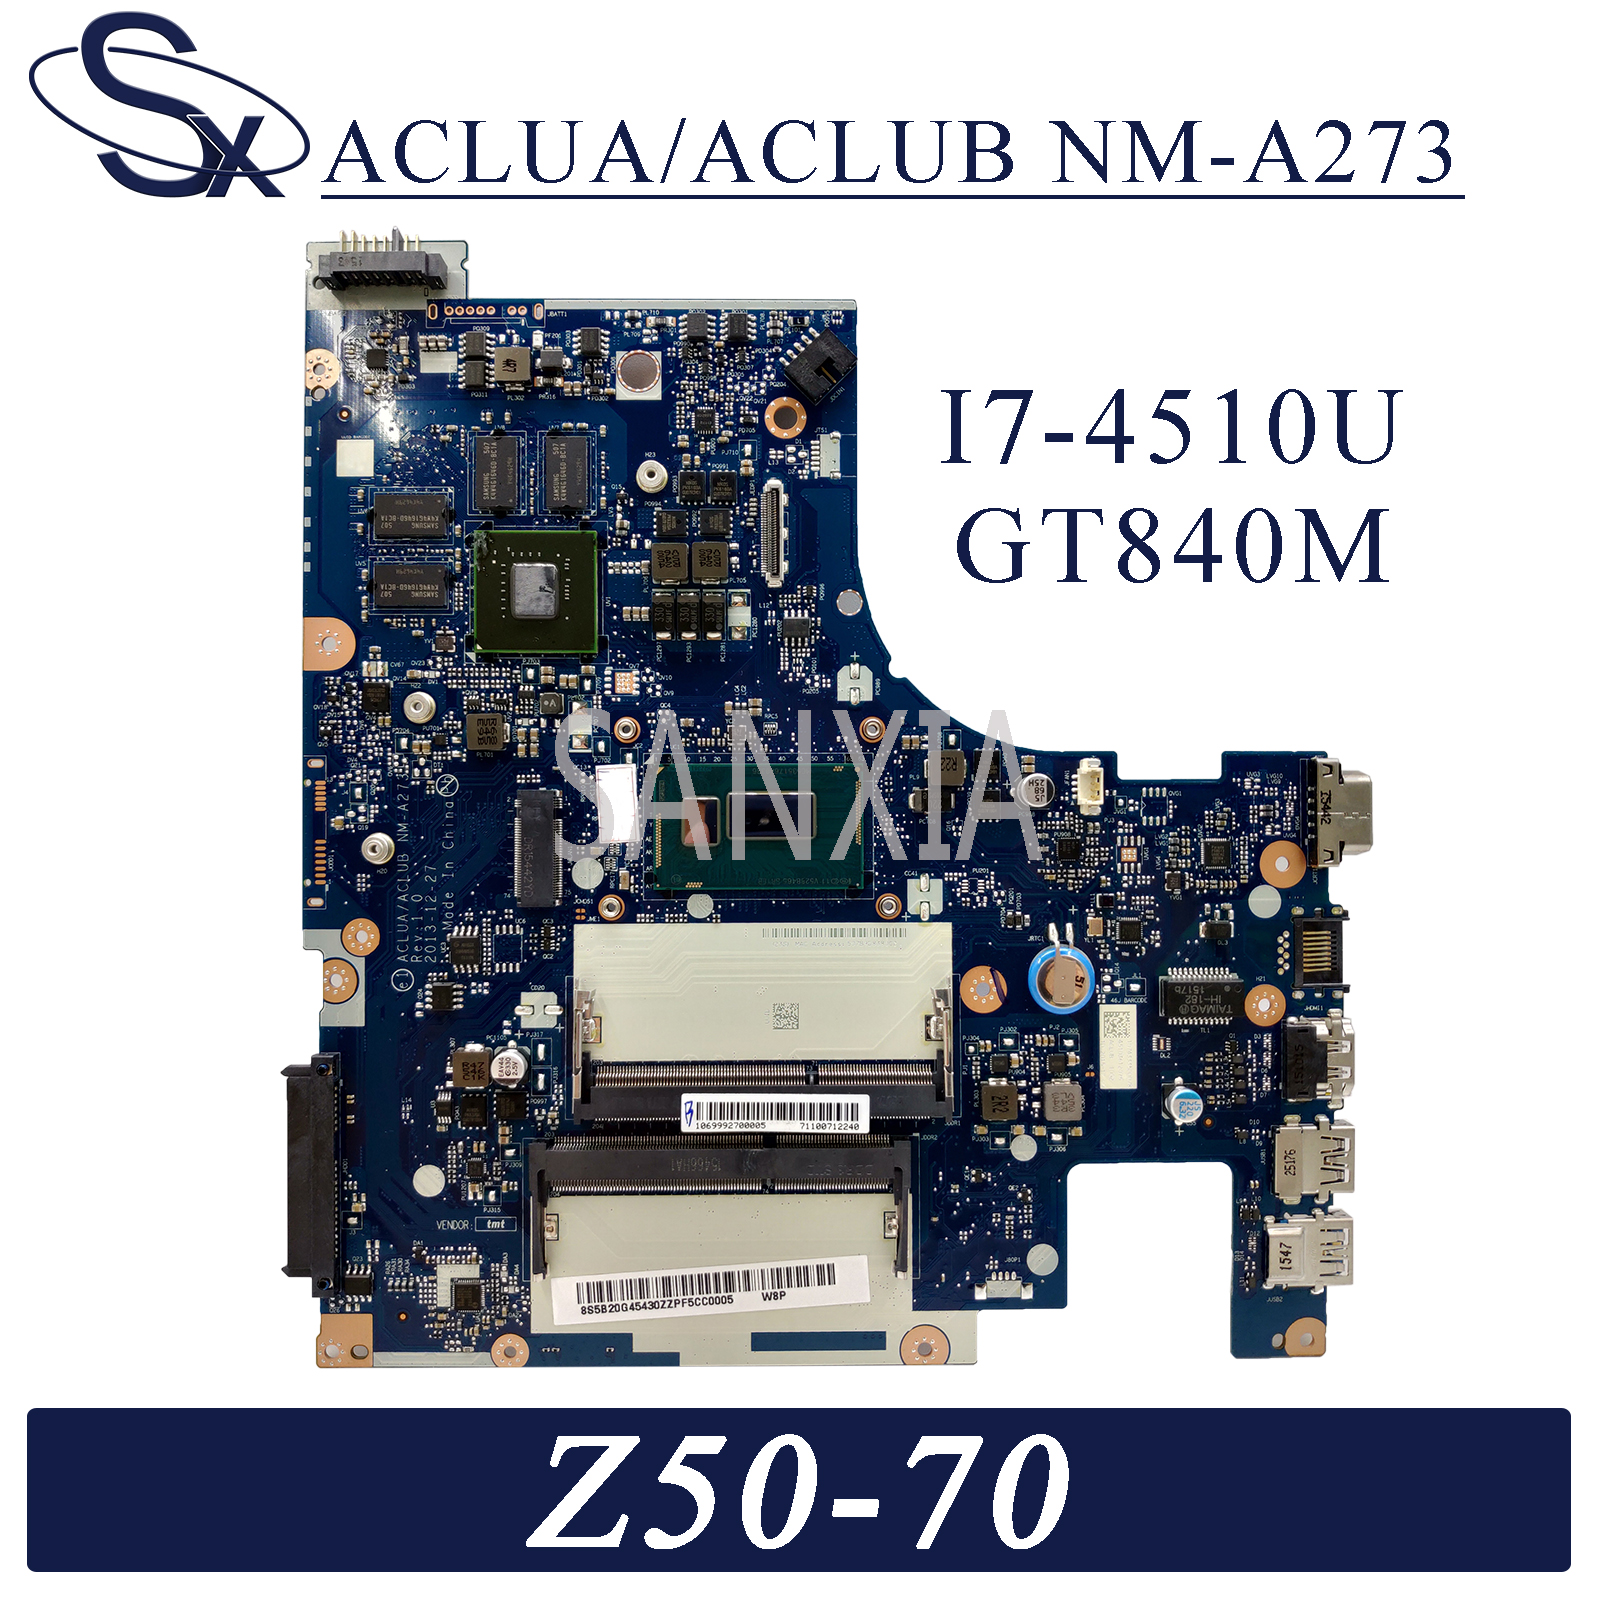 KEFU NM-A273 Laptop <font><b>motherboard</b></font> for <font><b>Lenovo</b></font> <font><b>Z50</b></font>-<font><b>70</b></font> G50-70M original mainboard I7-4510U GT840M image